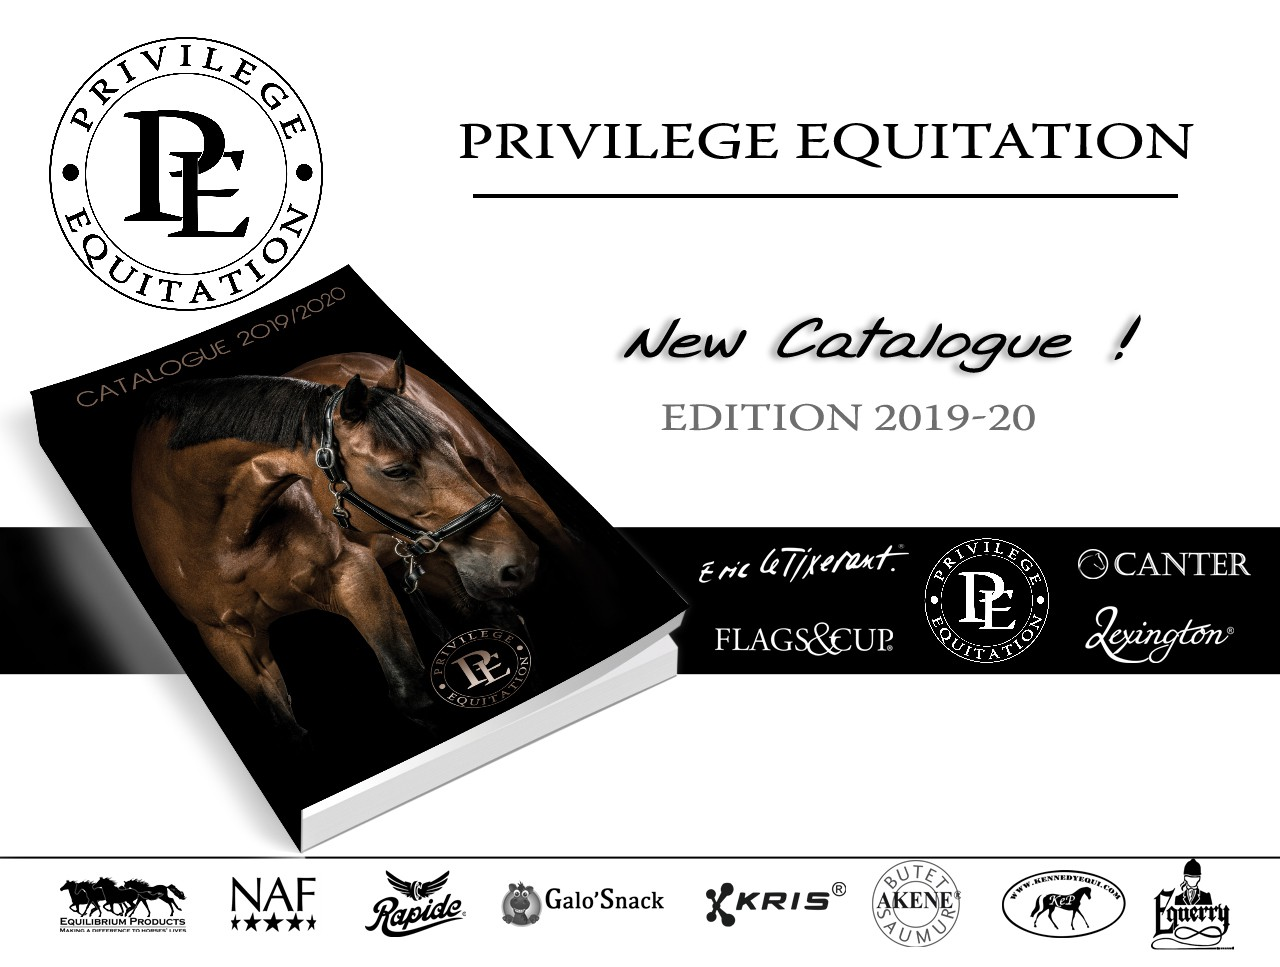 New Catalogue Privilège Equitation 2019-20